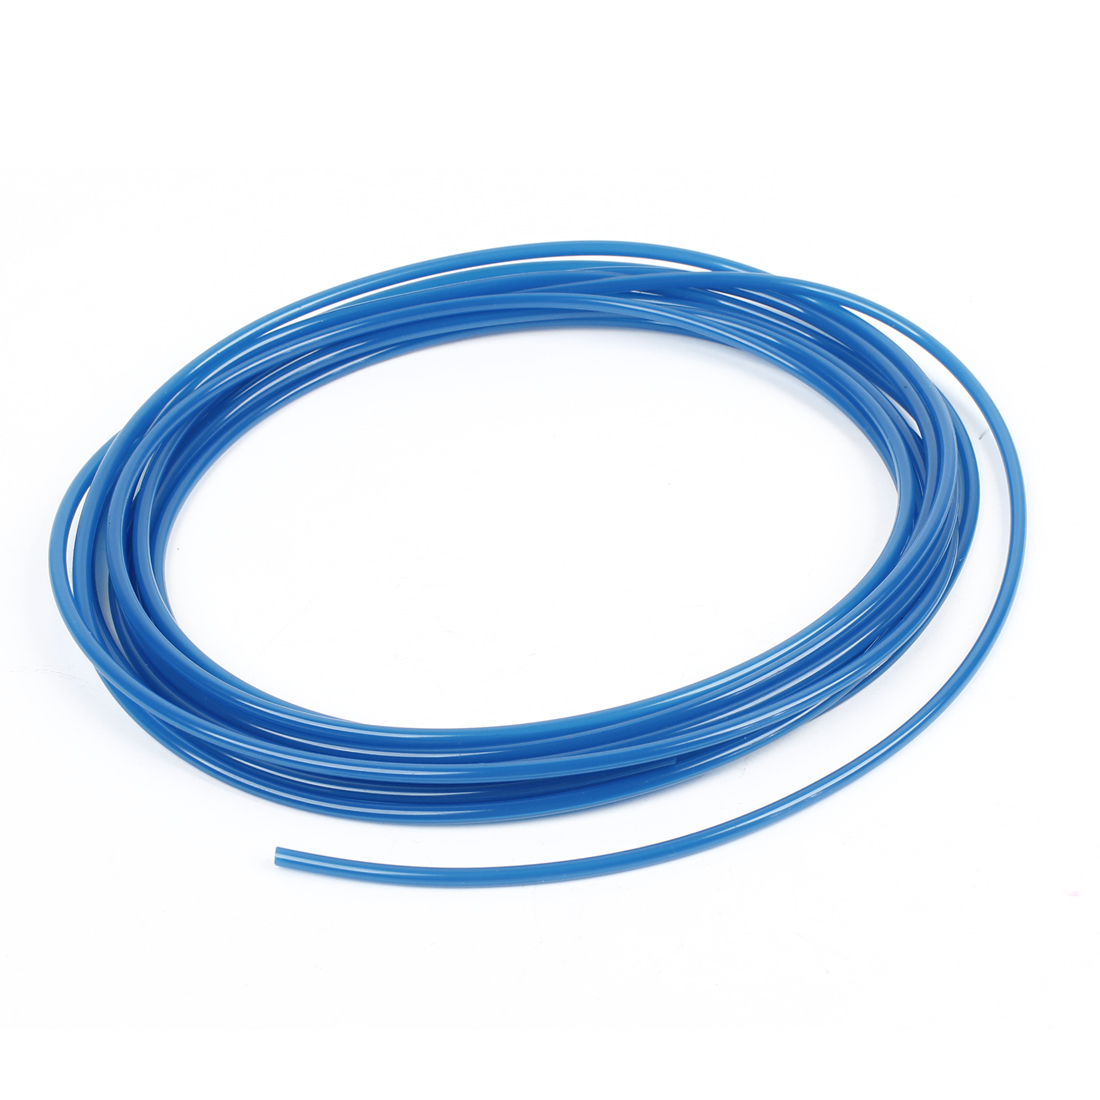 5 Meter 16.4Ft 4mm x 2.5mm Pneumatic Air PU Hose Pipe Tube Blue